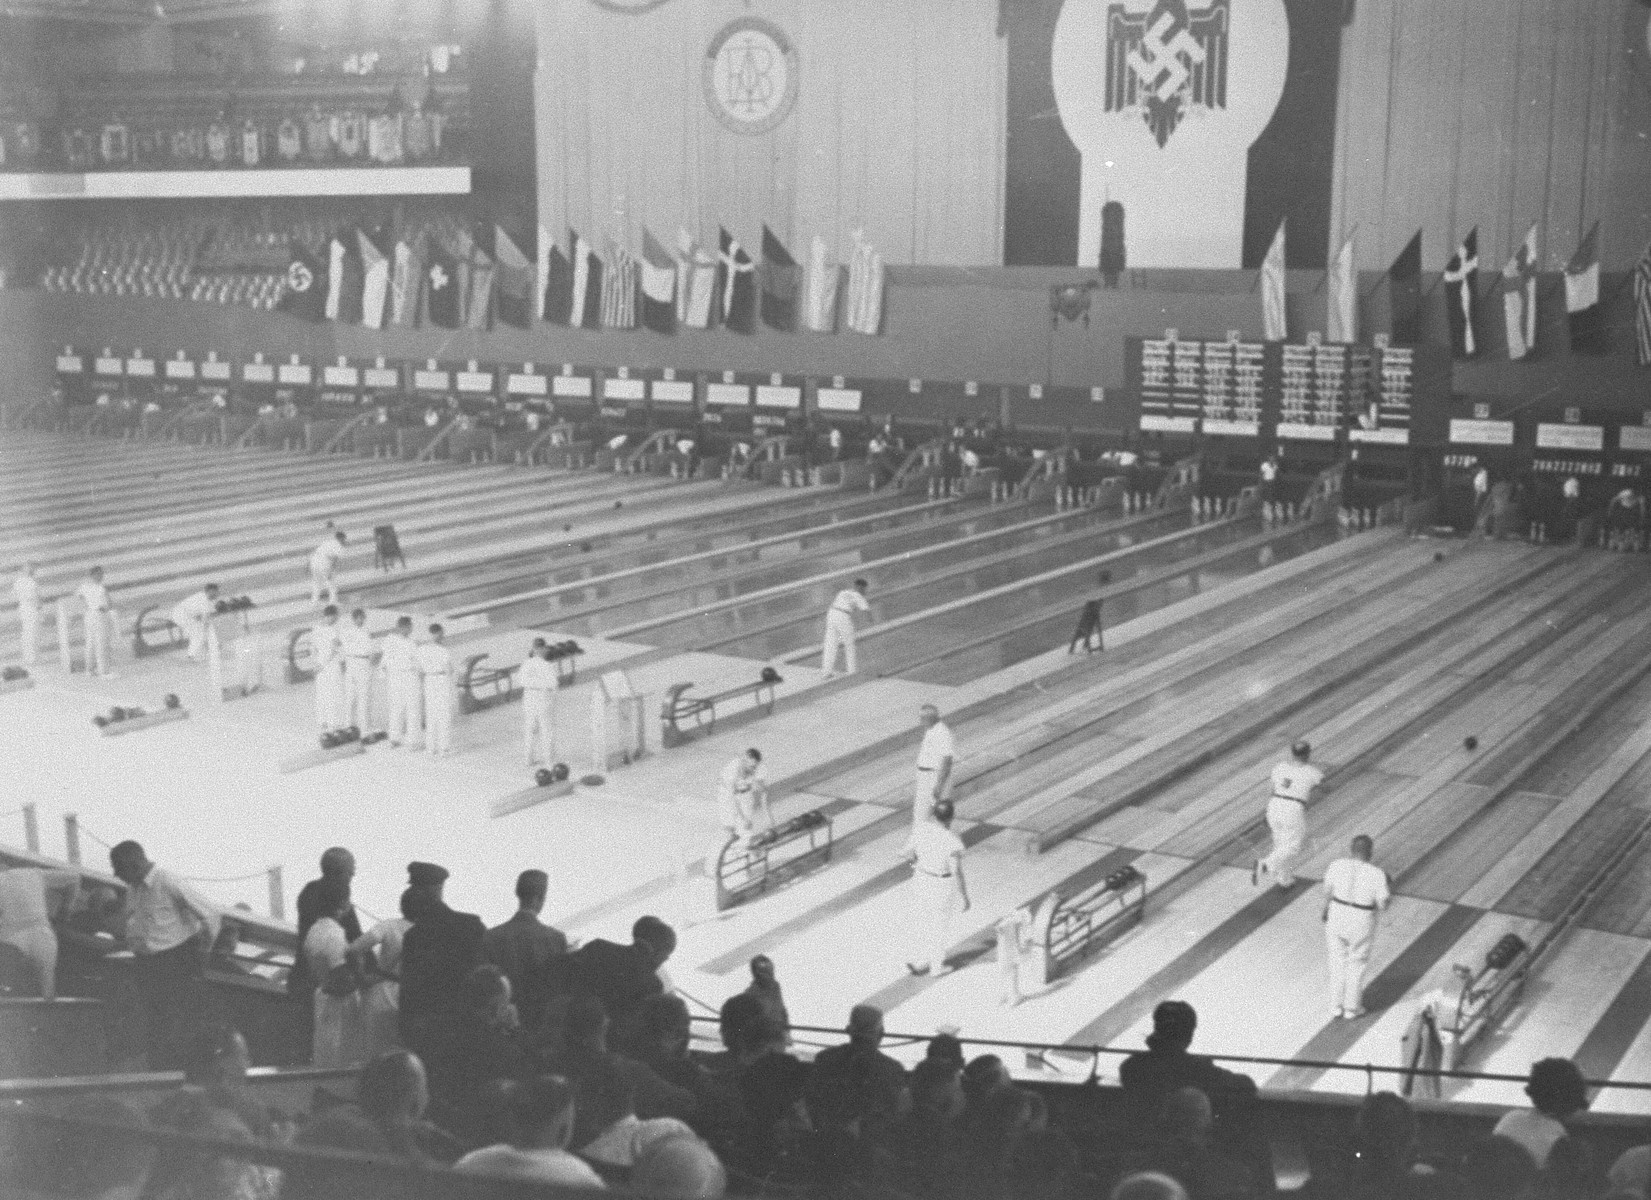 Bowling, an exhibition event at the 11th Olympic Games.